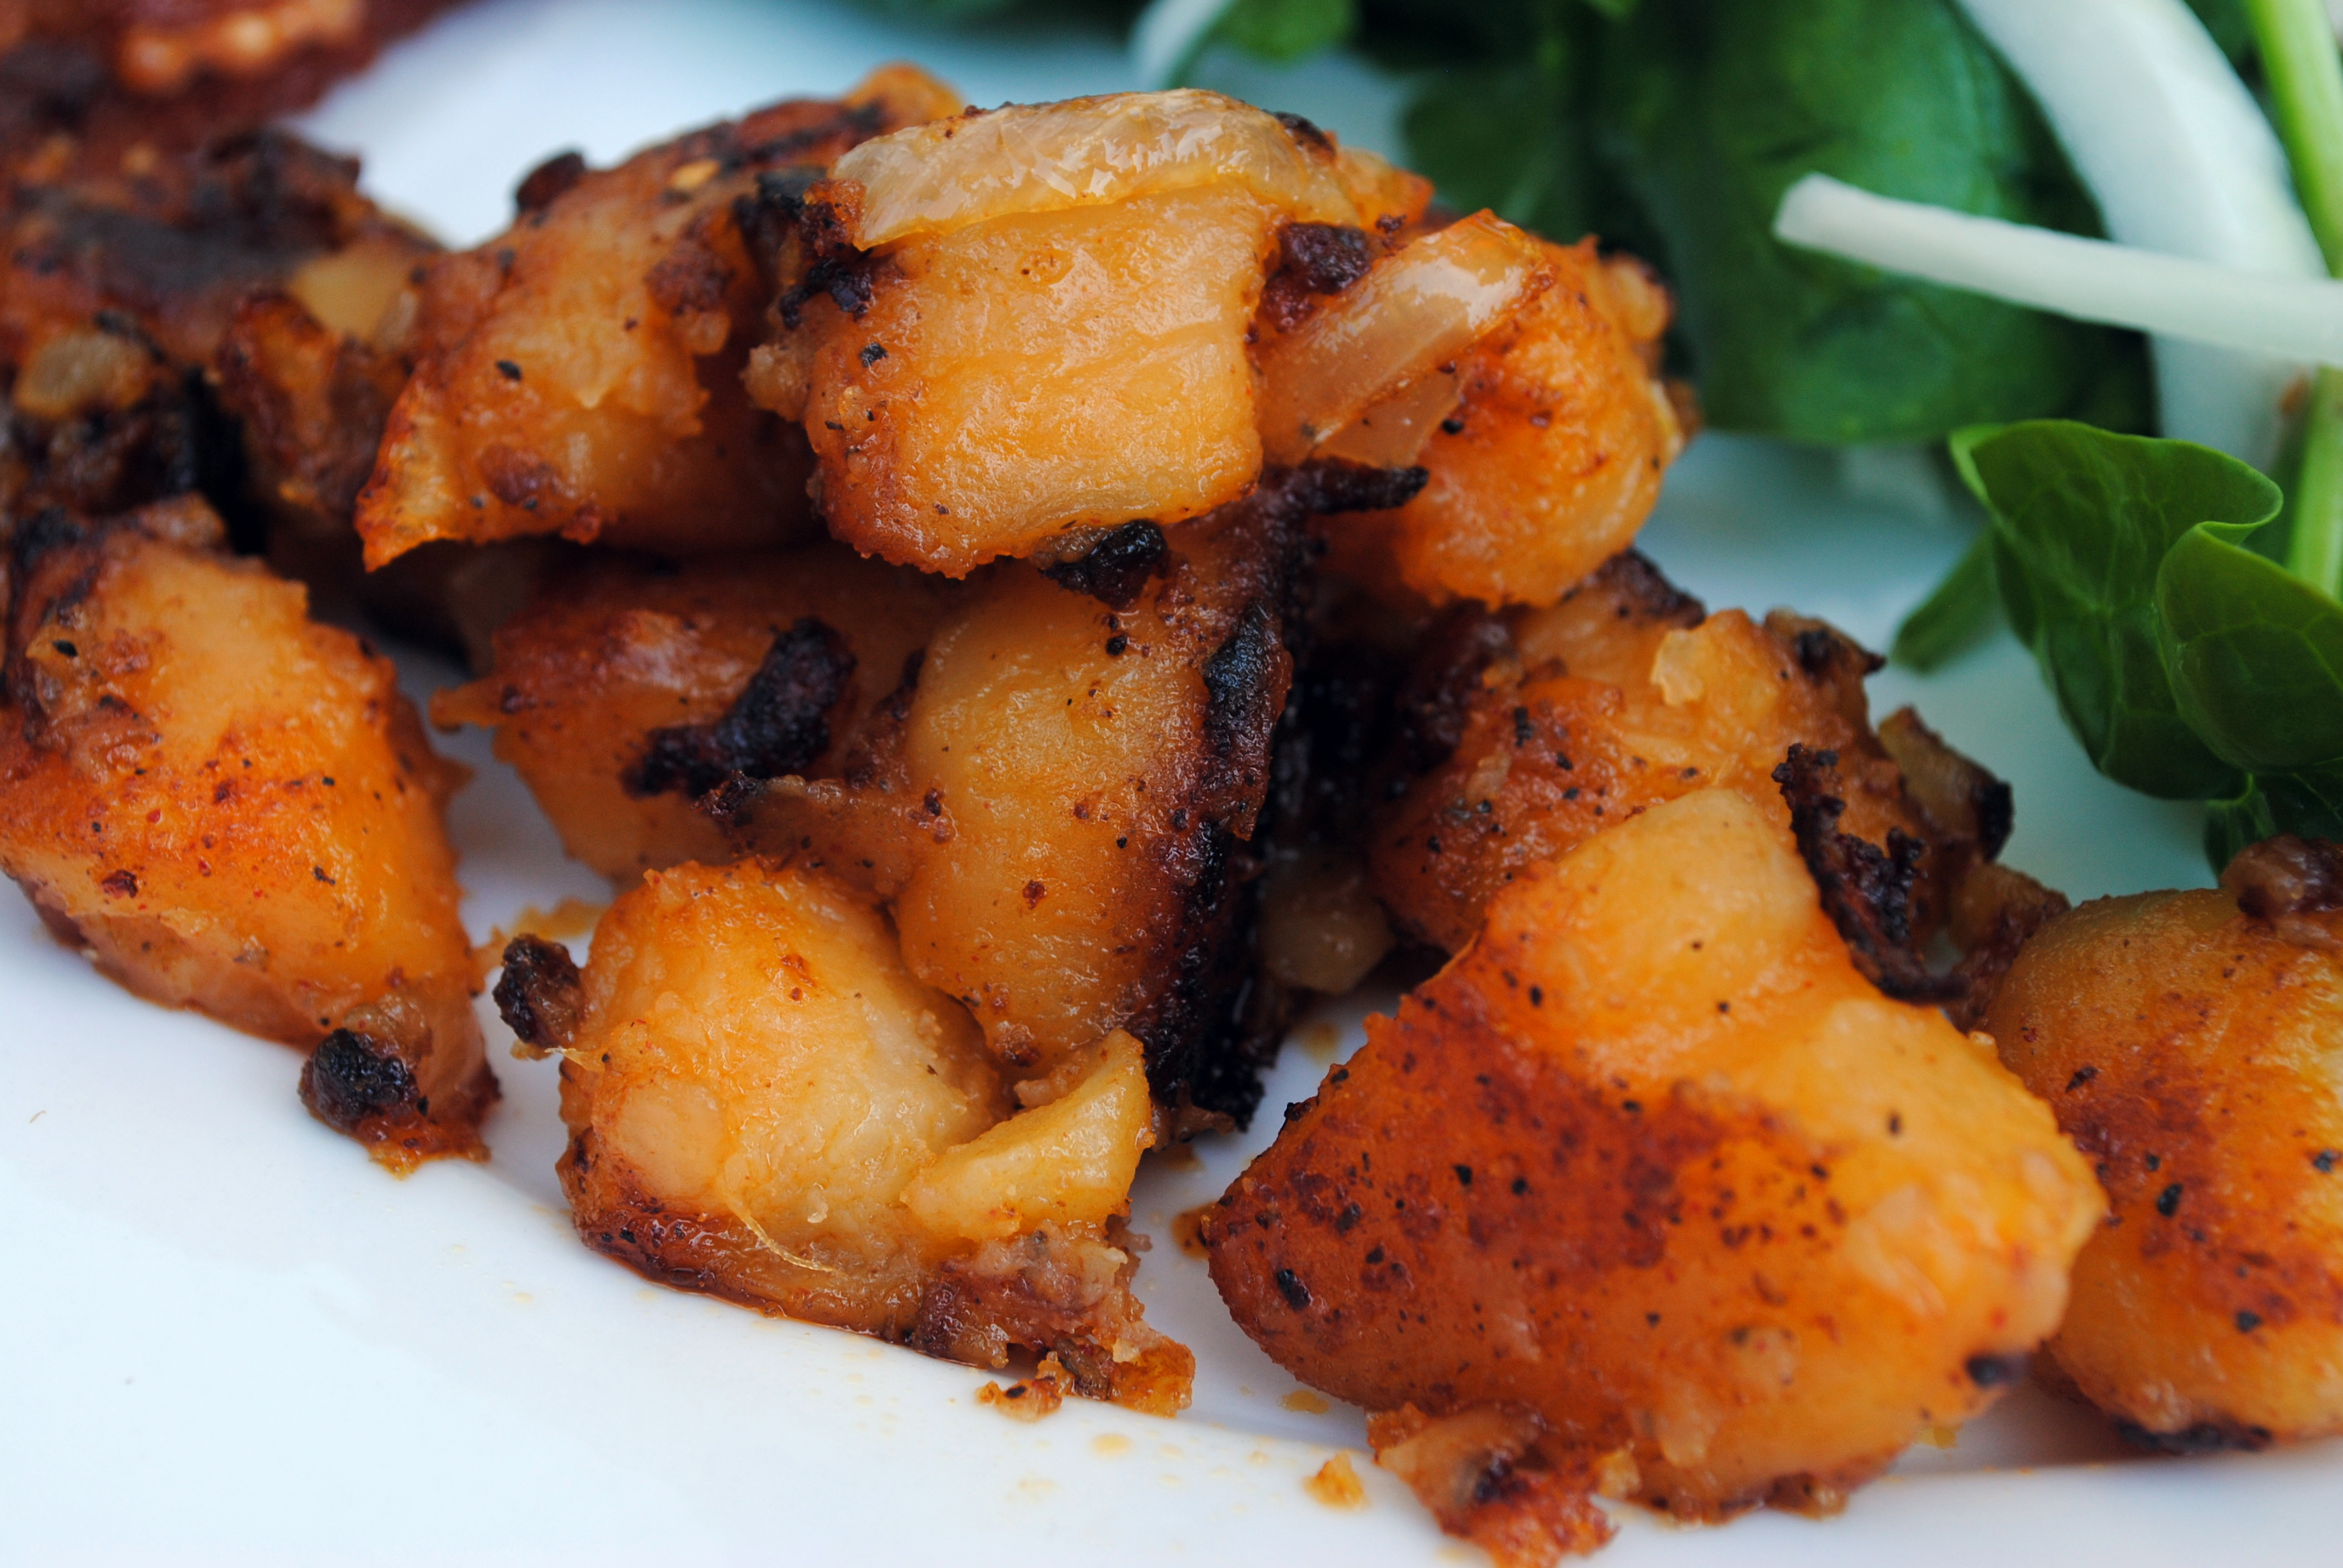 Home Fries (Gluten Free!) | Clare Cooks!